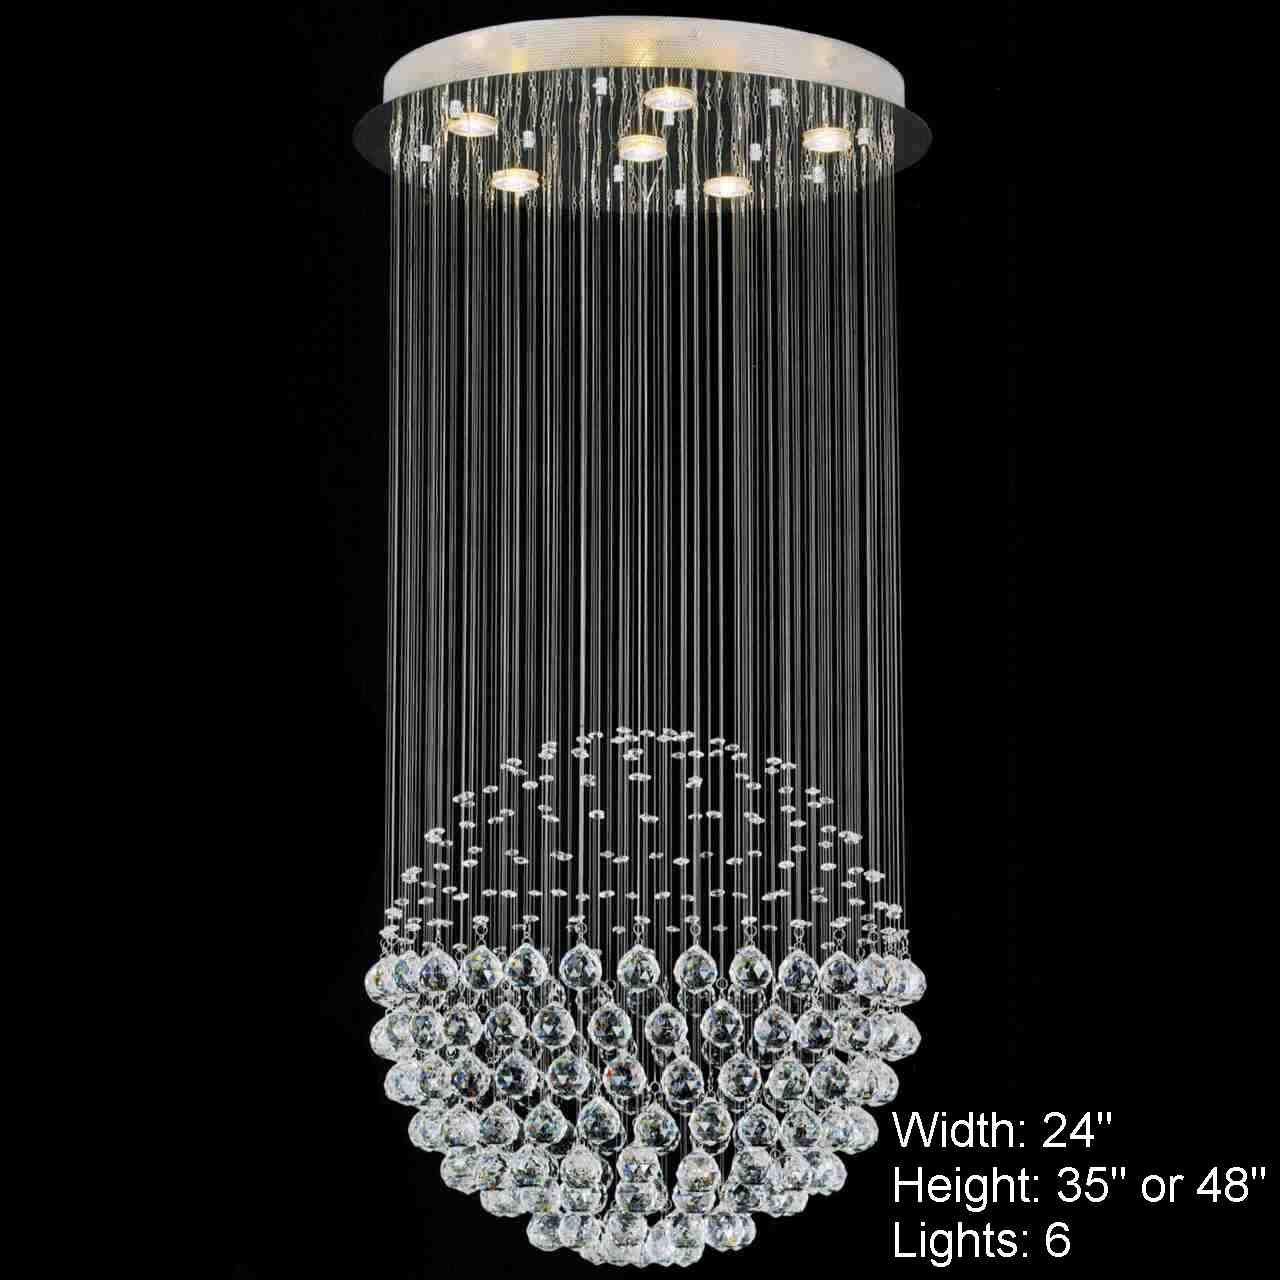 ... Picture of Sphere Modern Crystal Chandelier Large Mirror Stainless Steel Base 6 Lights  sc 1 st  Brizzo Lighting Stores & Brizzo Lighting Stores. Sphere Modern Crystal Chandelier Large ... azcodes.com